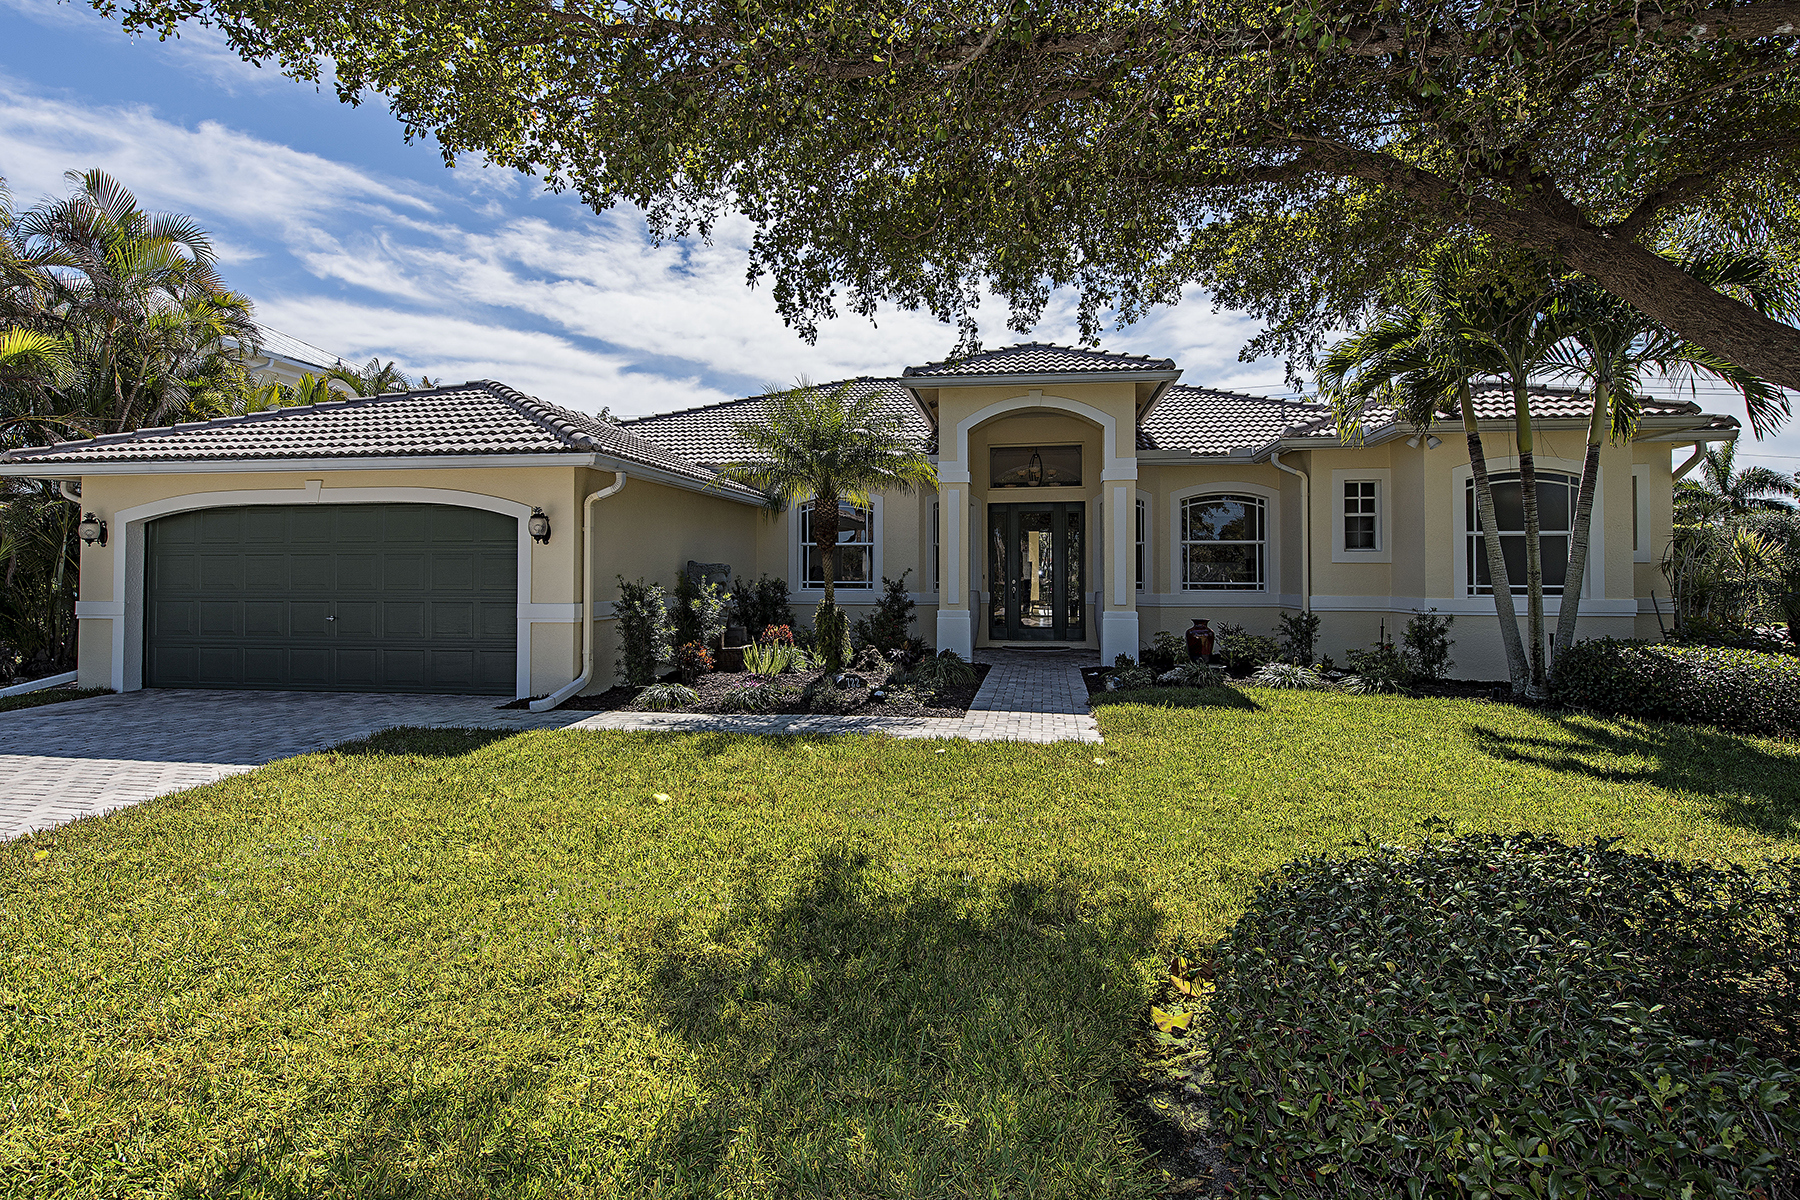 Single Family Home for Sale at OLDE NAPLES - GOLF DRIVE ESTATES 722 S Golf Dr Naples, Florida, 34102 United States